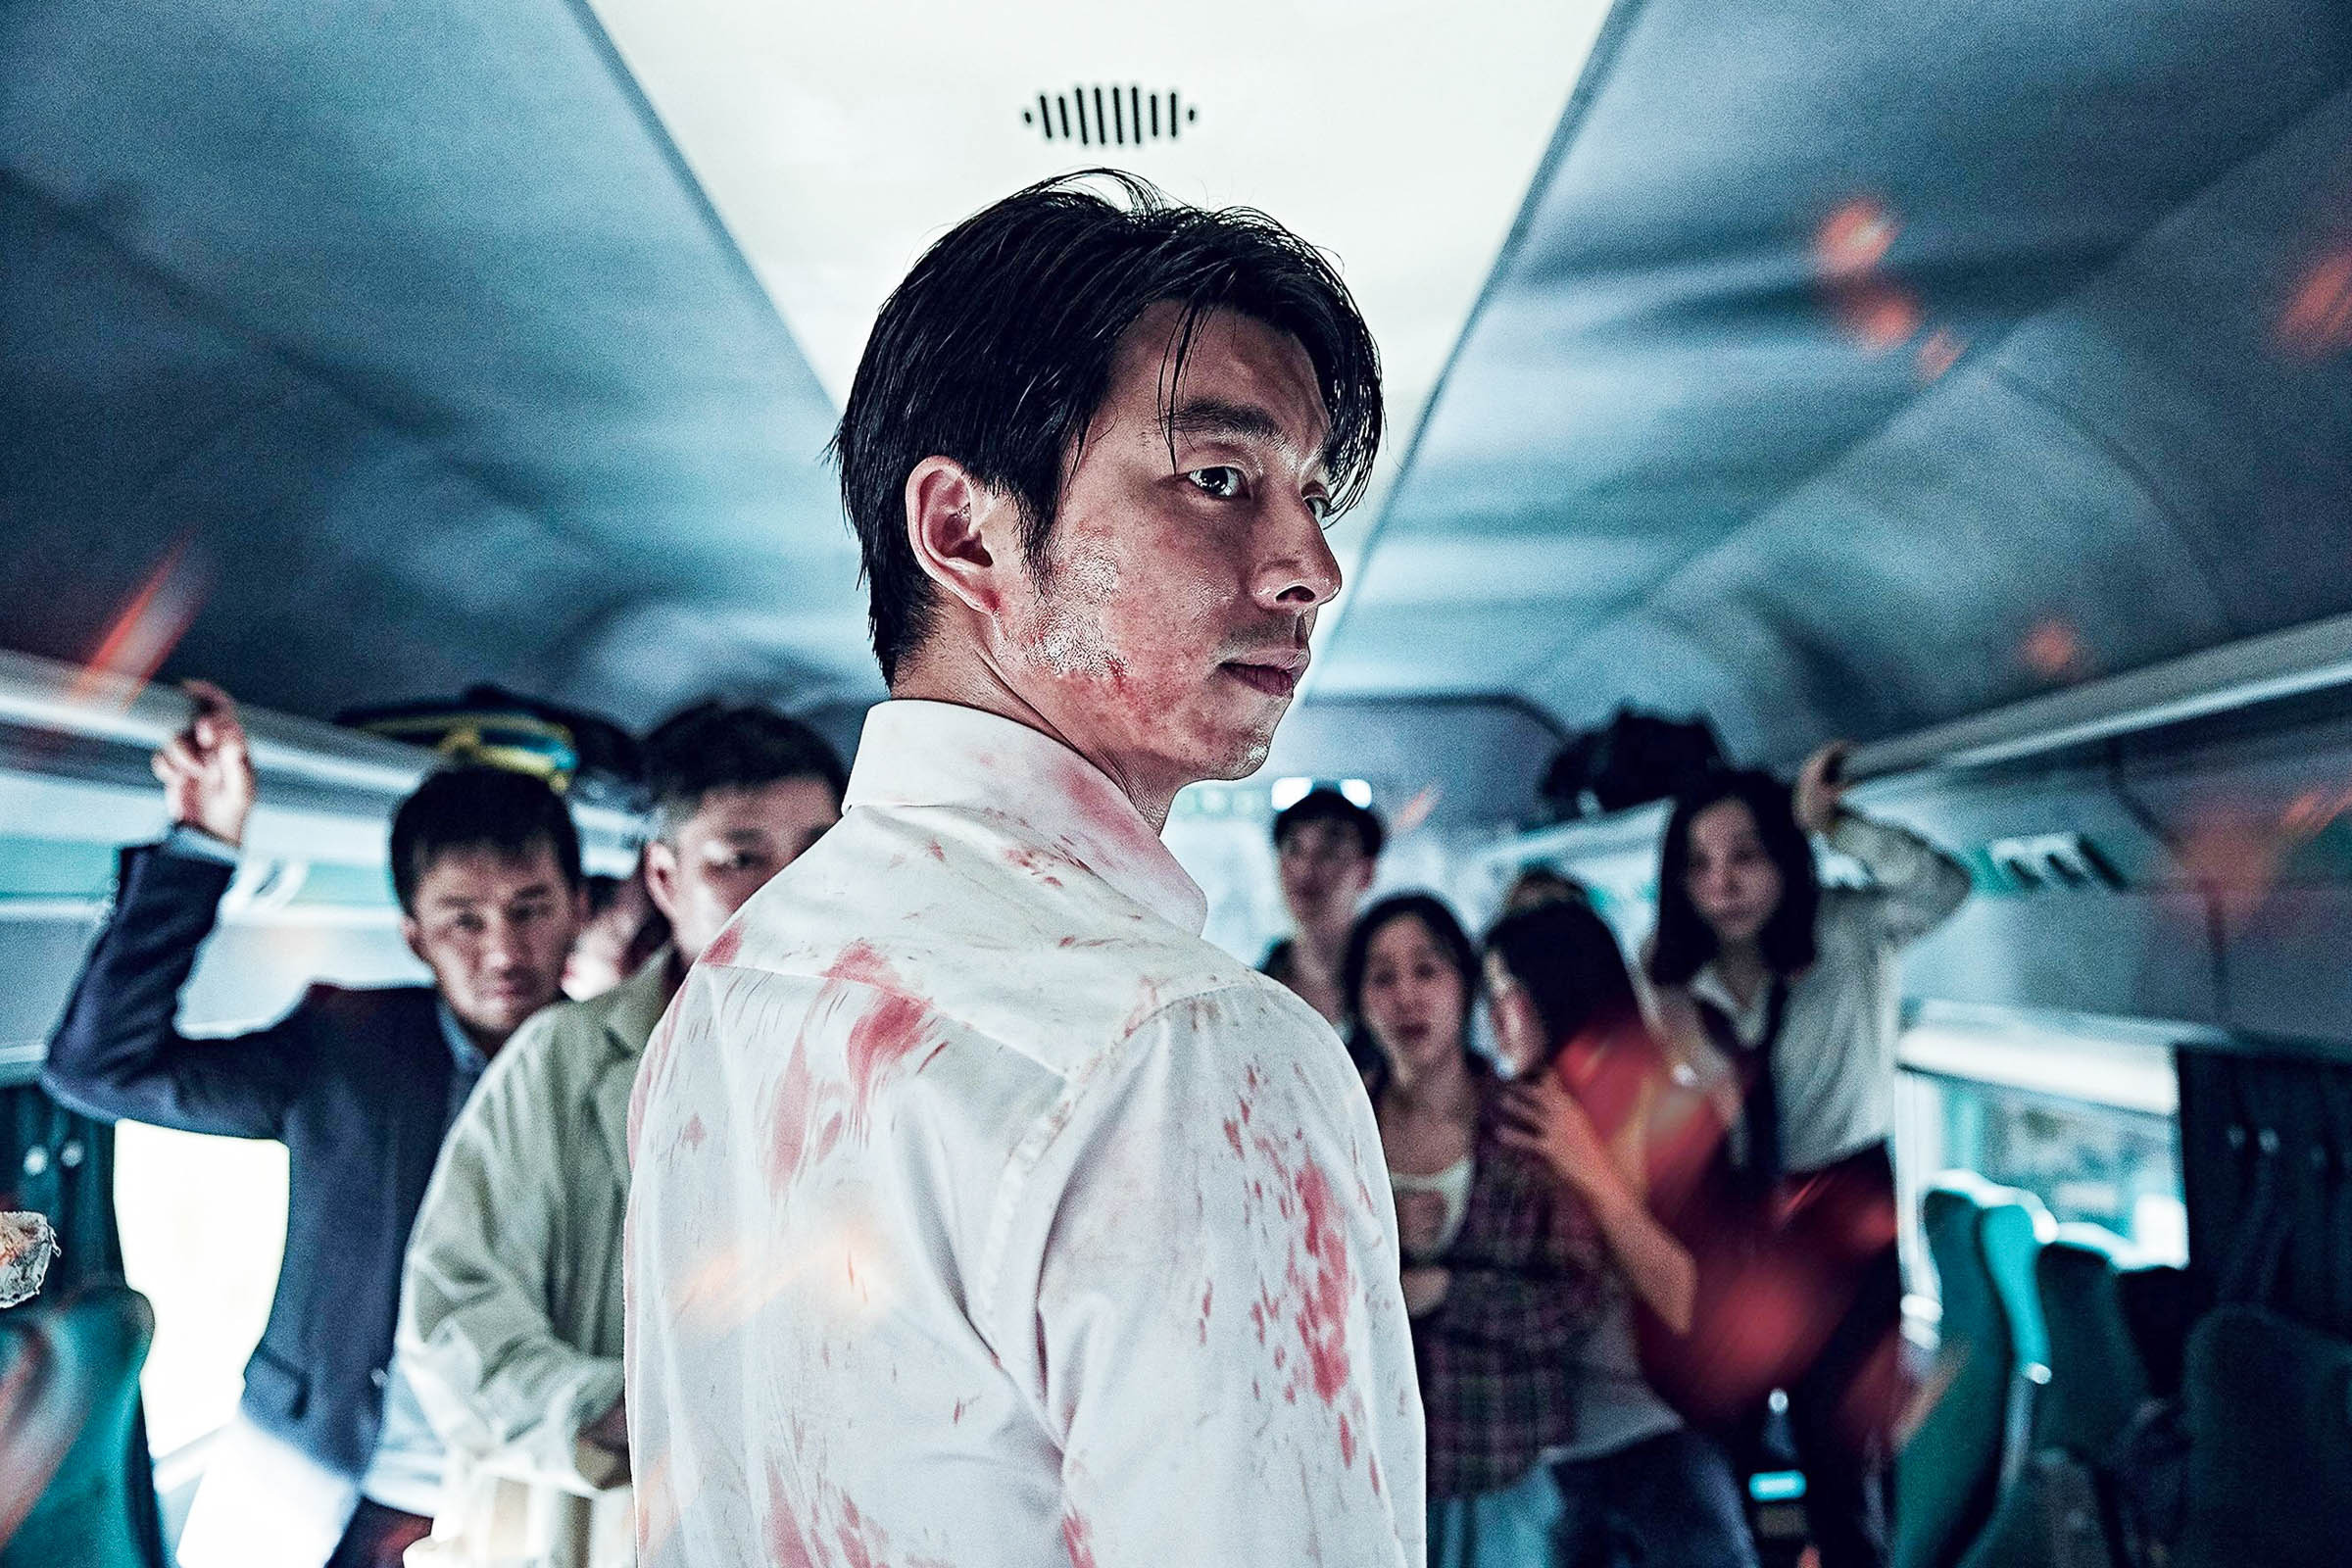 FREE HORROR Cul-TrainBusan-MCDTRTO_EC061.jpg Here Are The Best Japanese/Foreign Horror Movies To Watch This Halloween